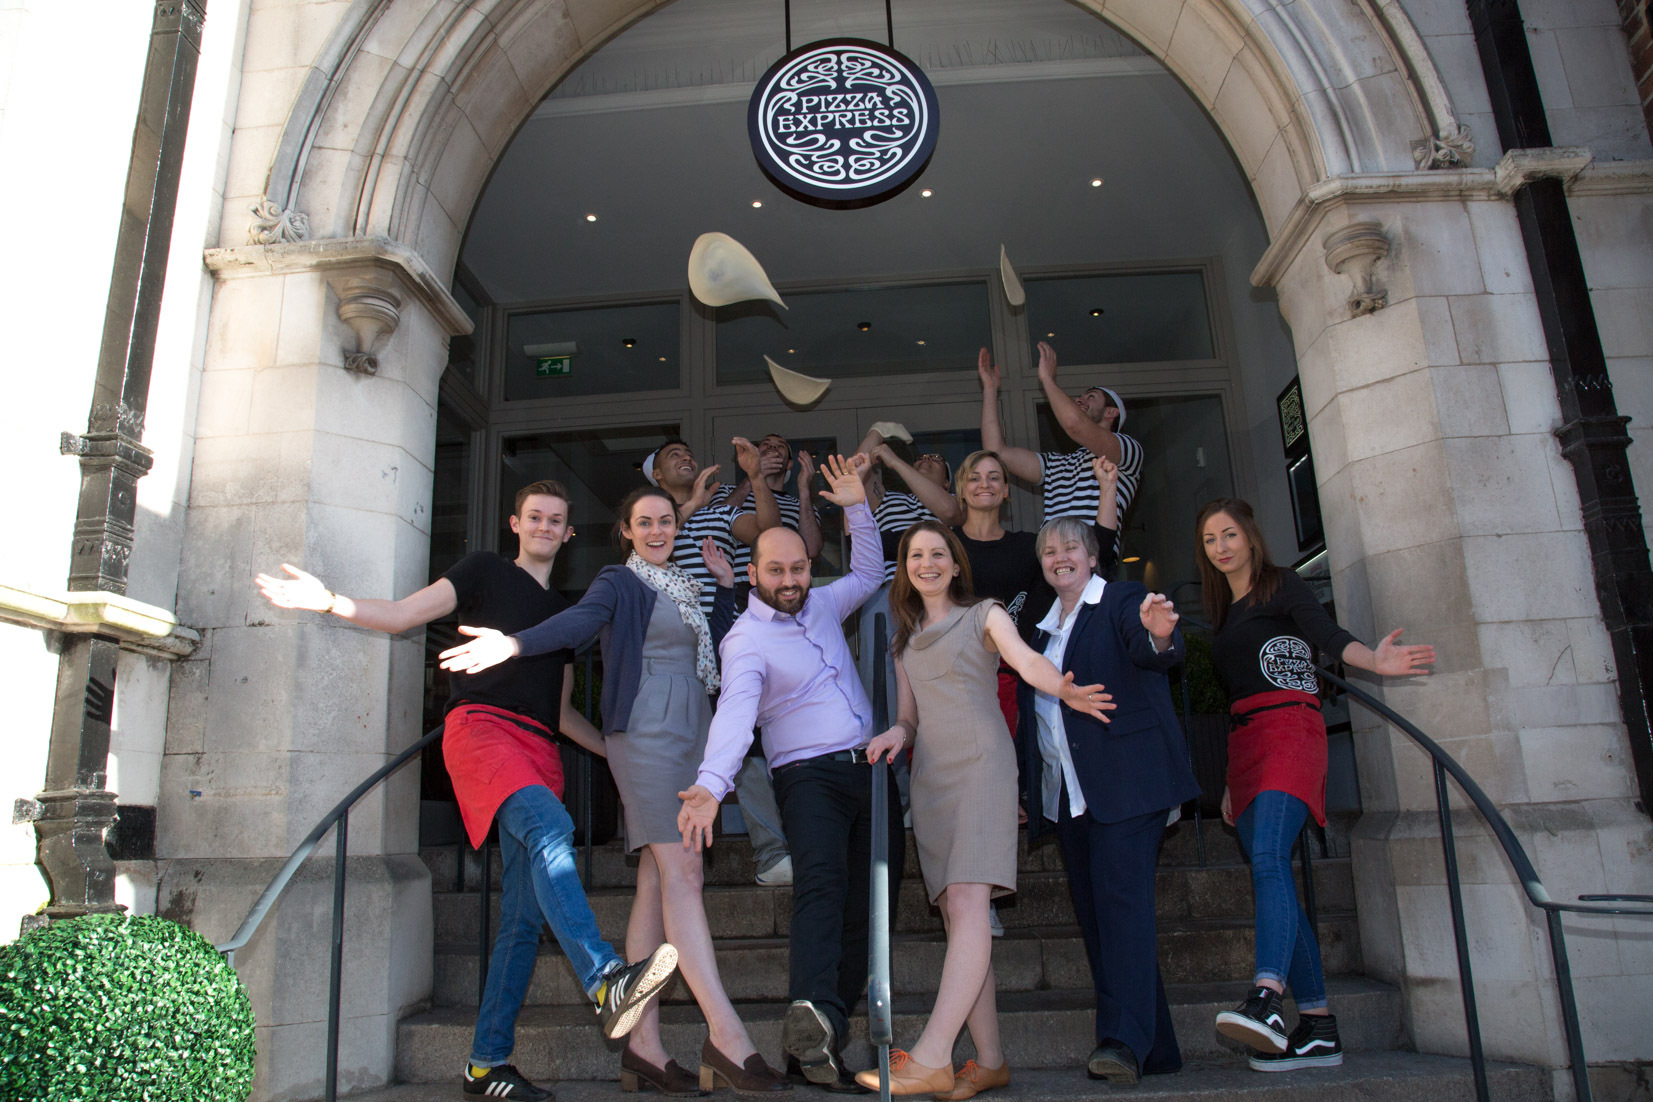 Pizza Chain Reopens After Refurbishment Hereford Times